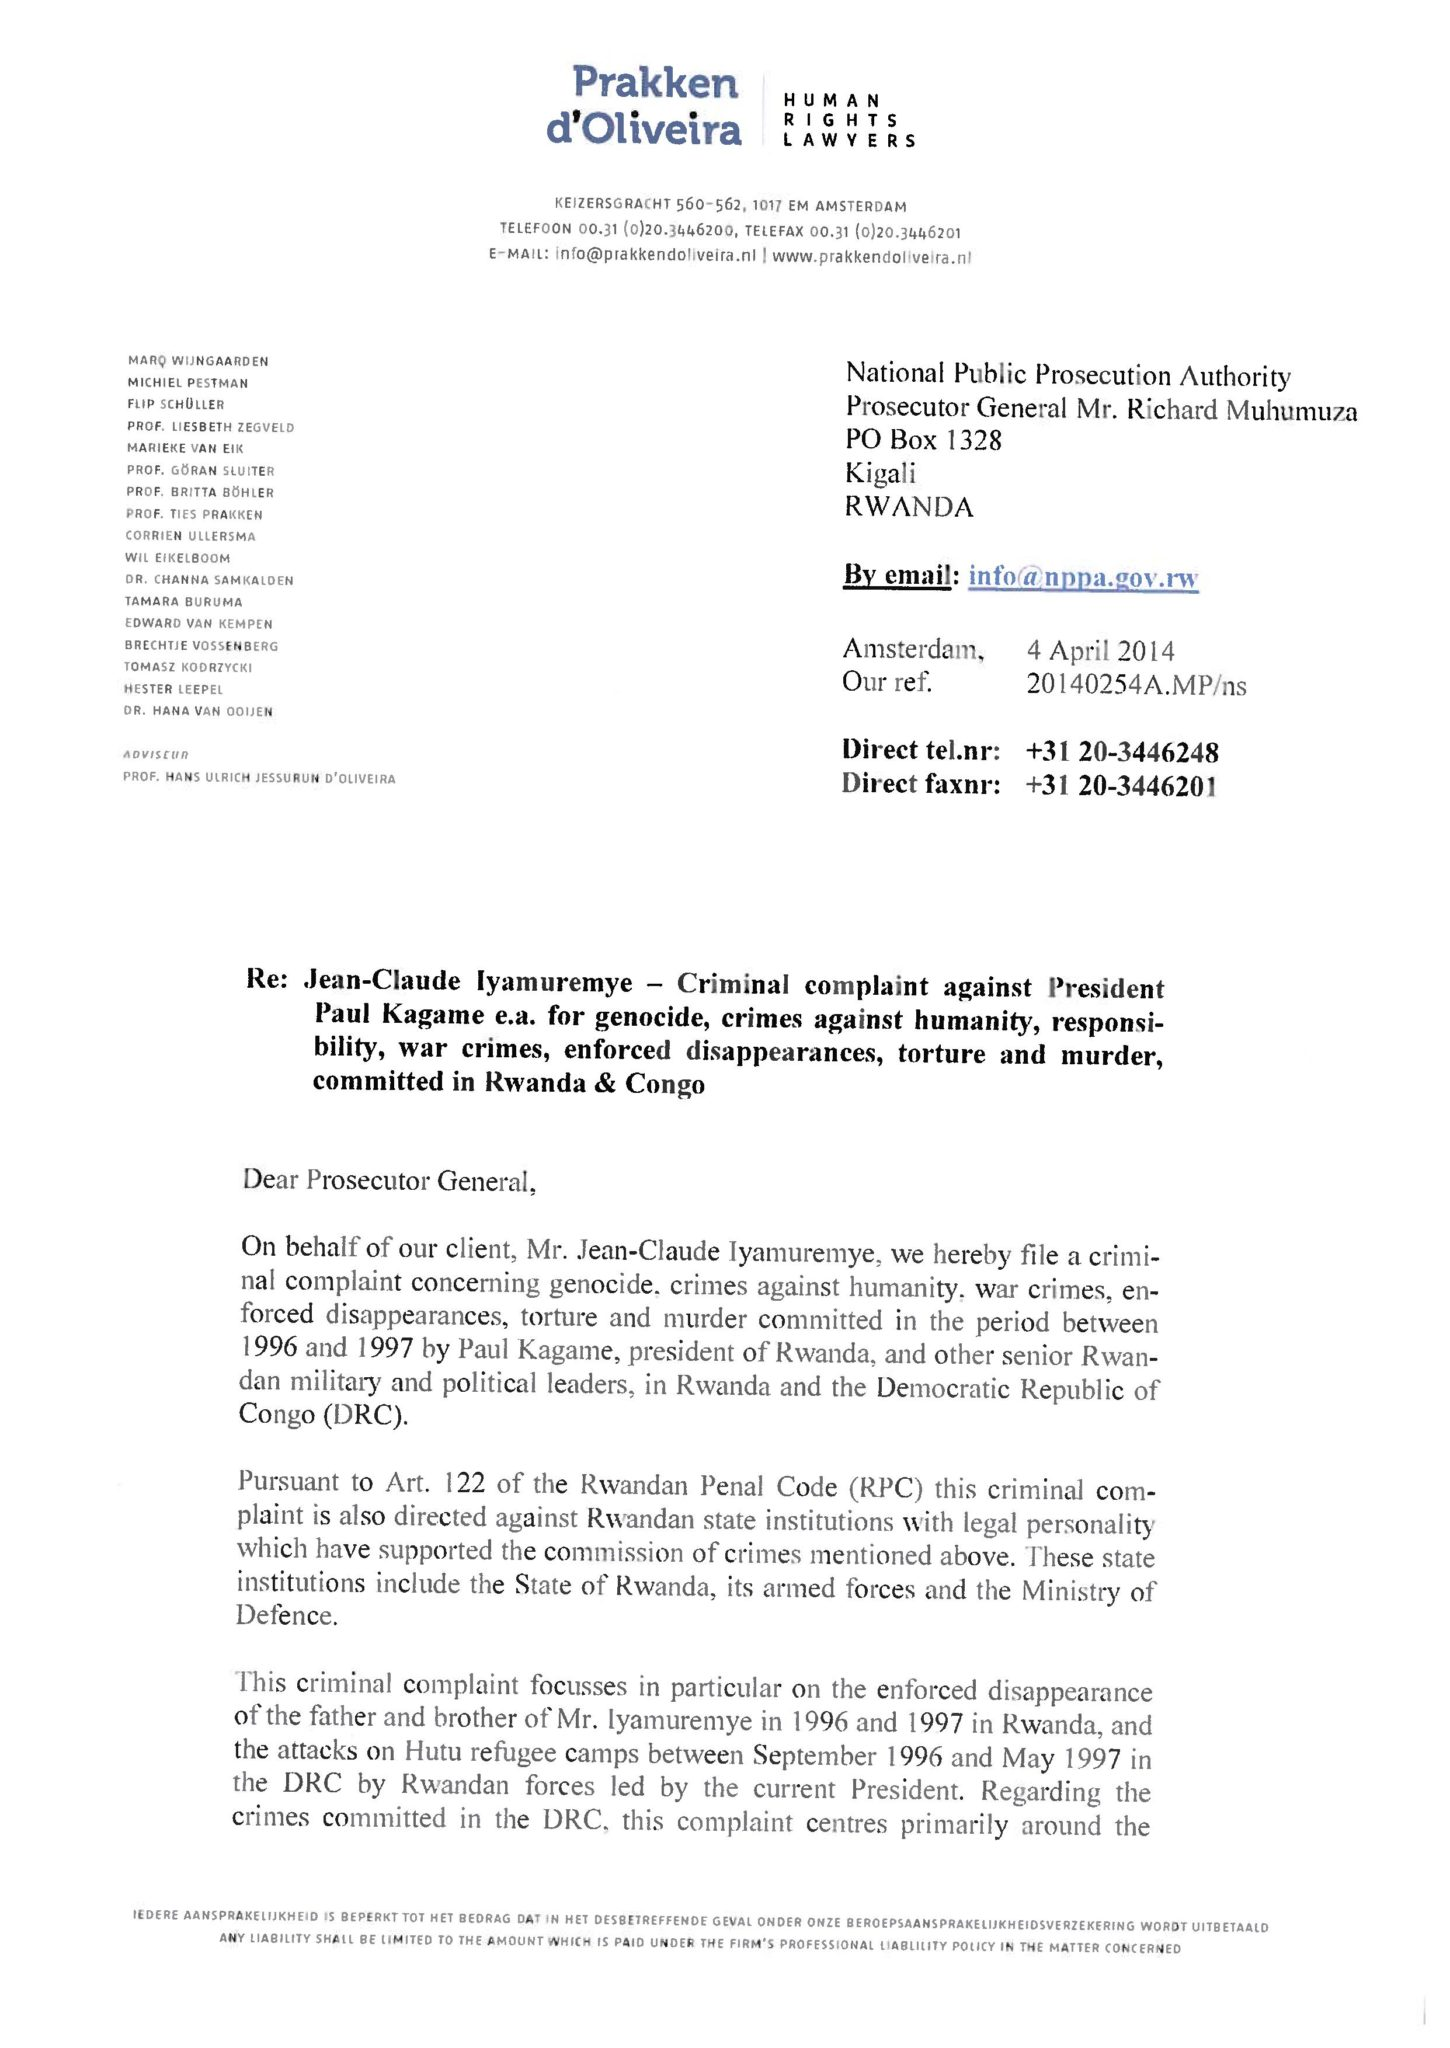 criminal-complaint-against-kagame-by-jean-claude-iyamuremye-page-001